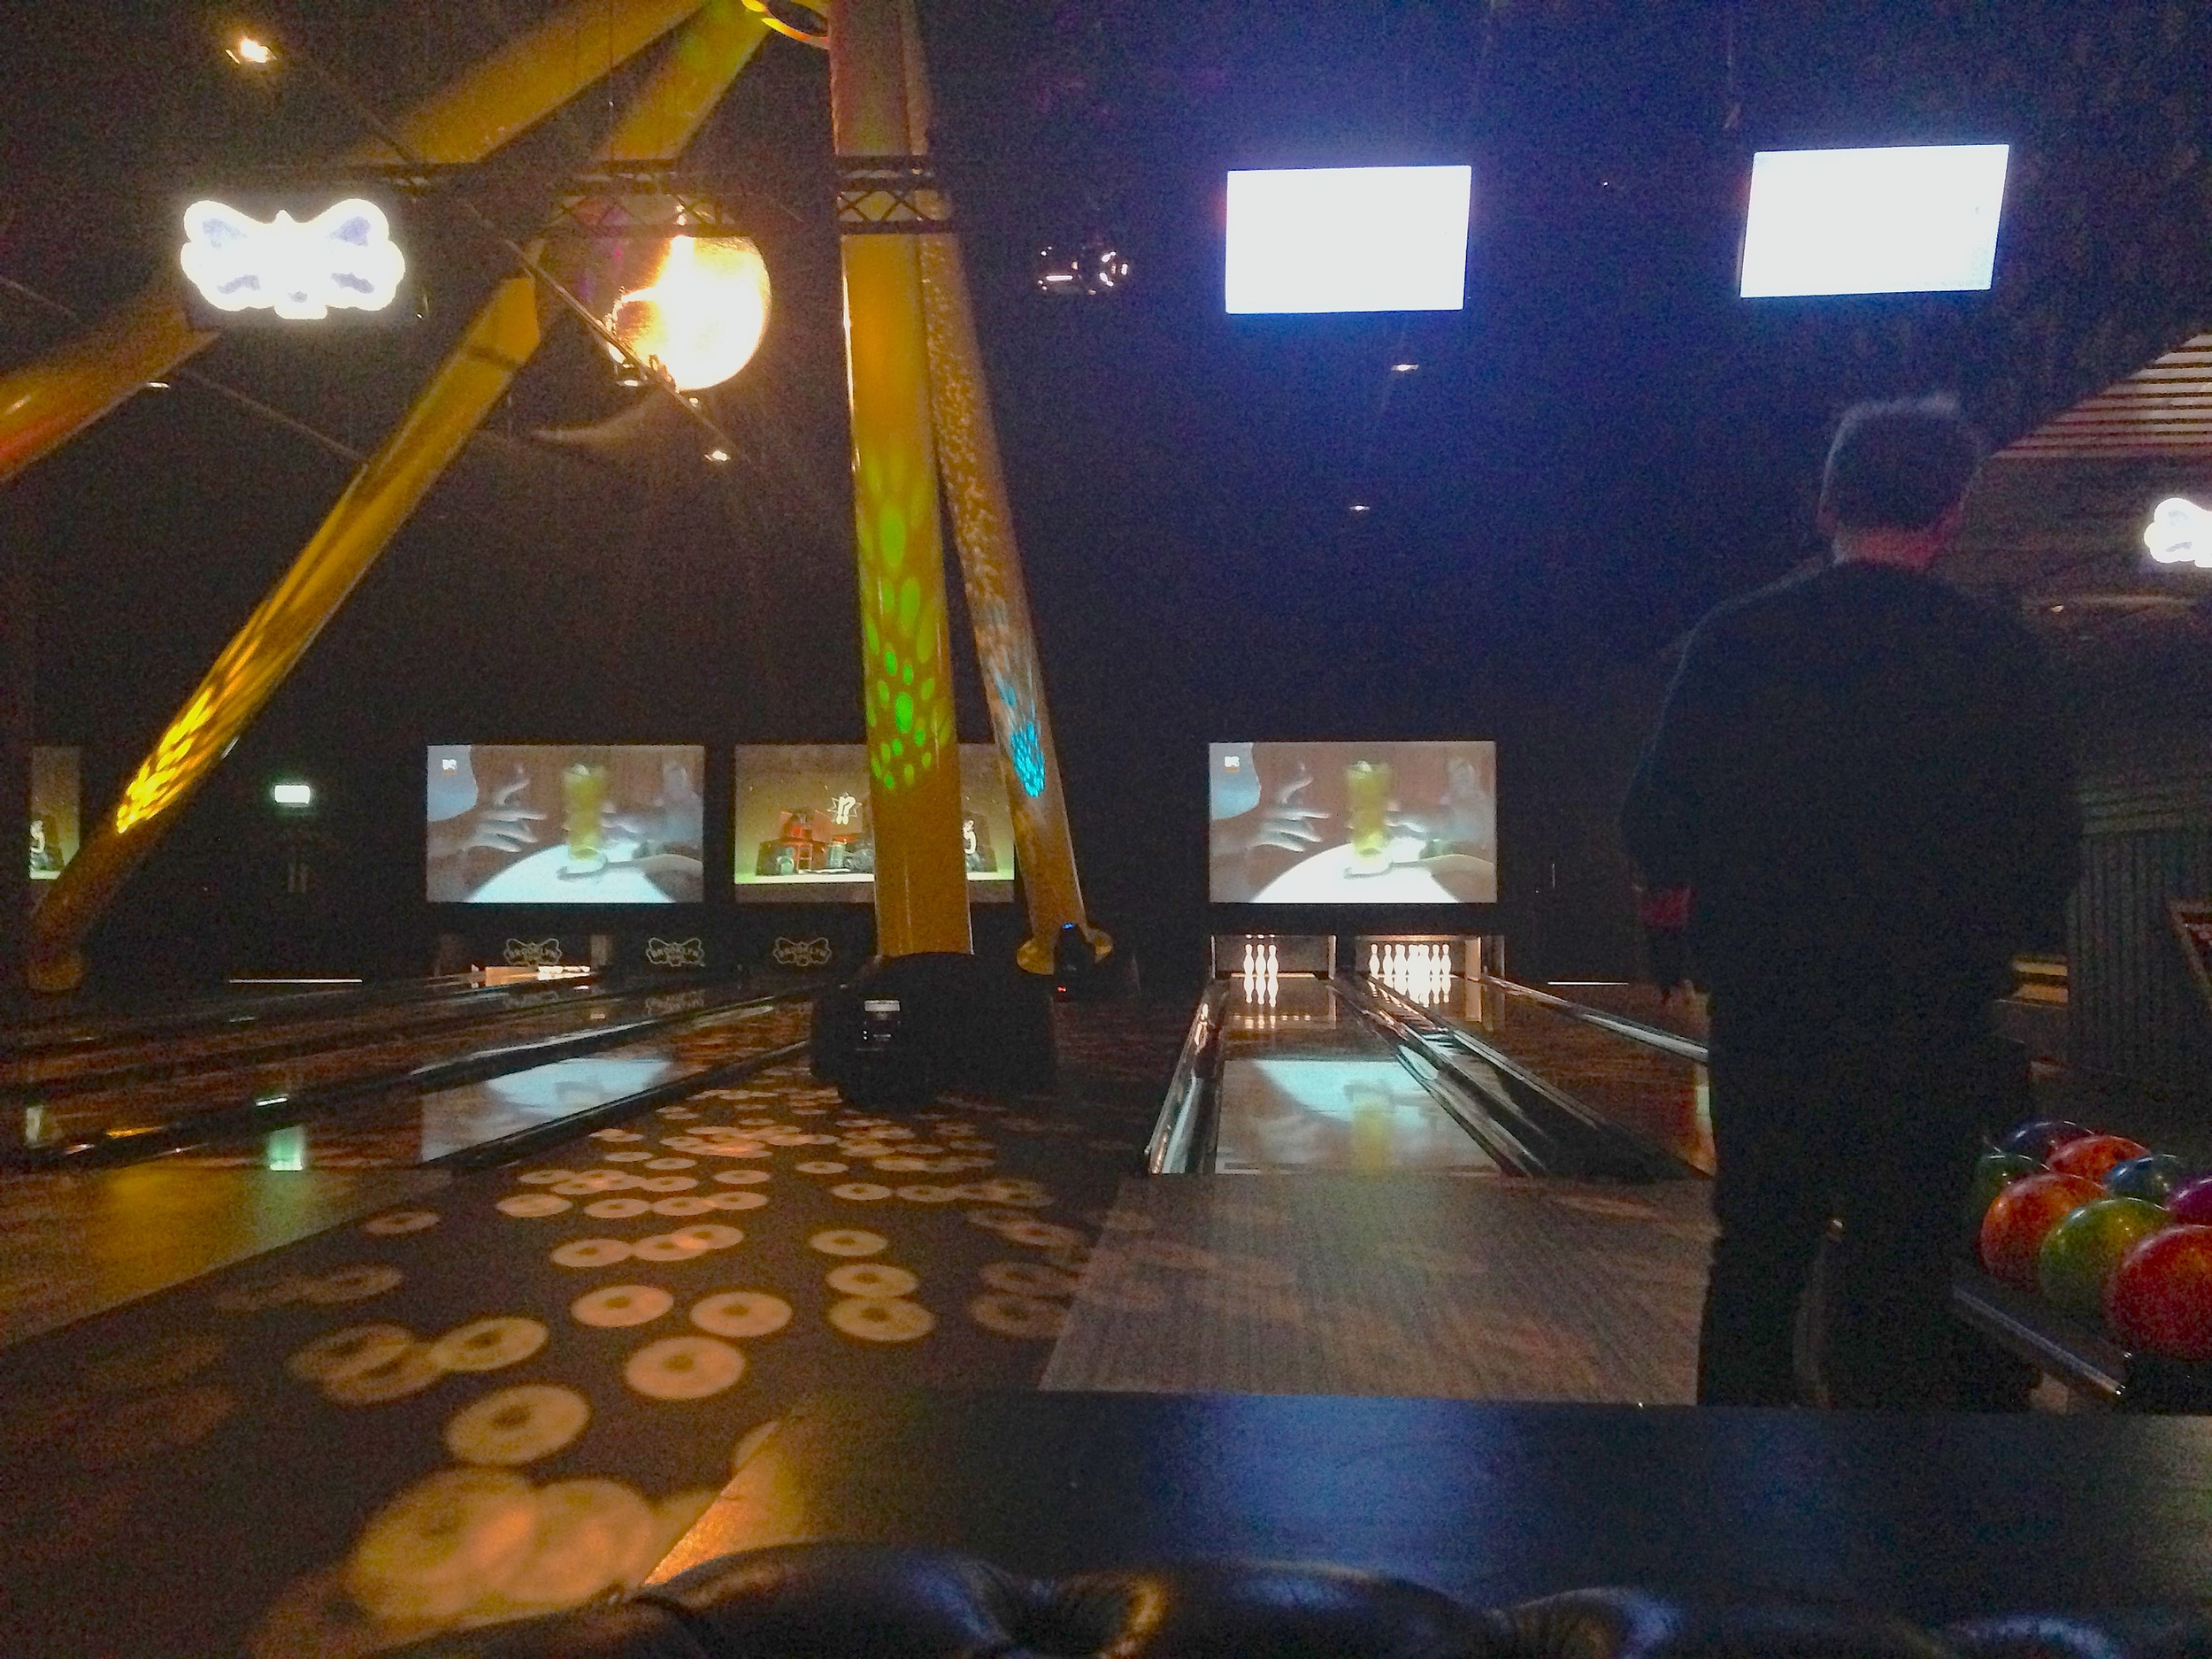 Note irritating televisions. Also note irritating Blair Support Tripod ruining the layout of the lanes.